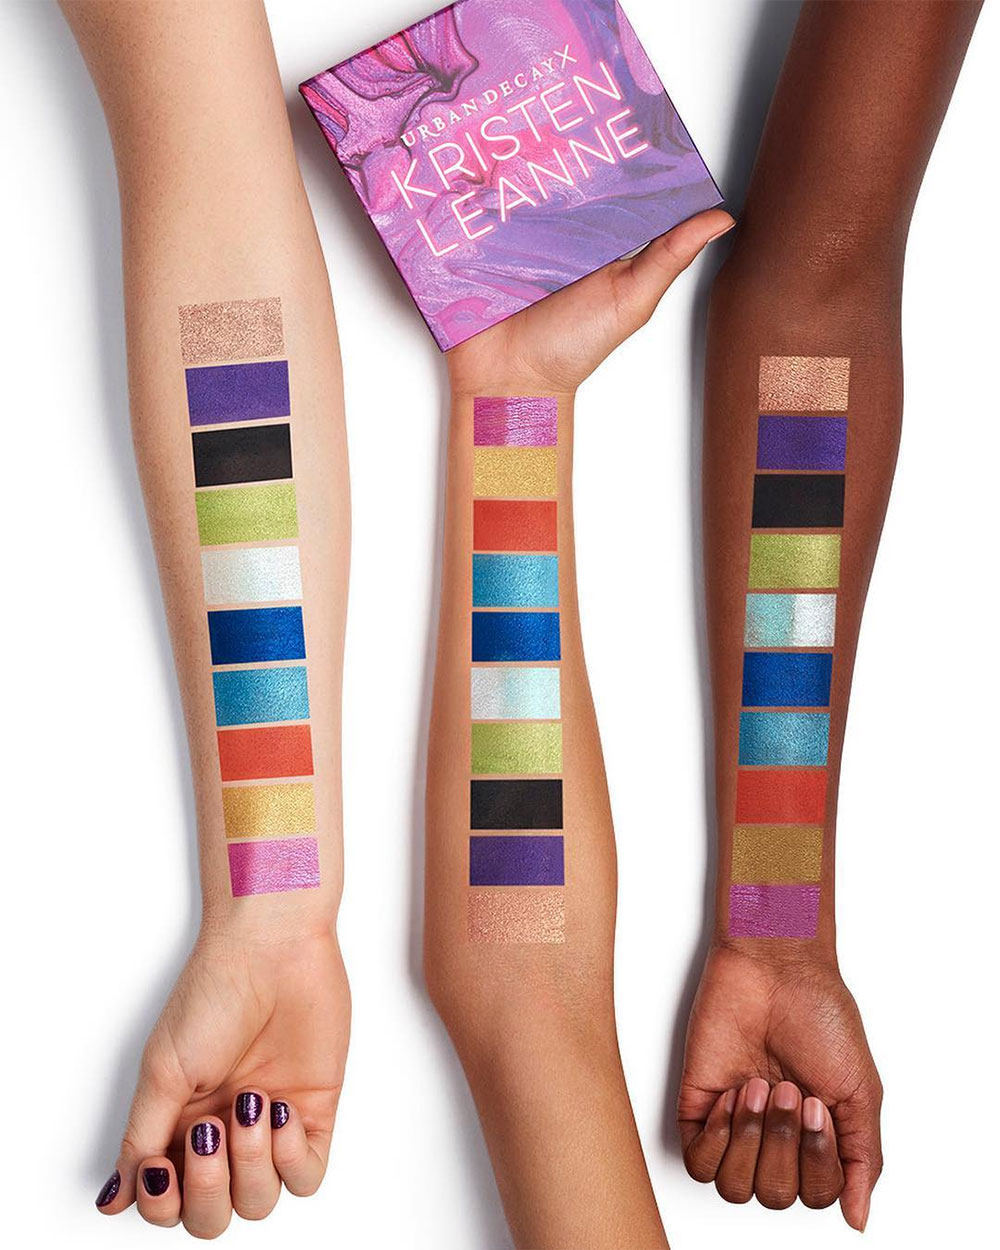 Urban Decay Kaleidoscope Palette swatches